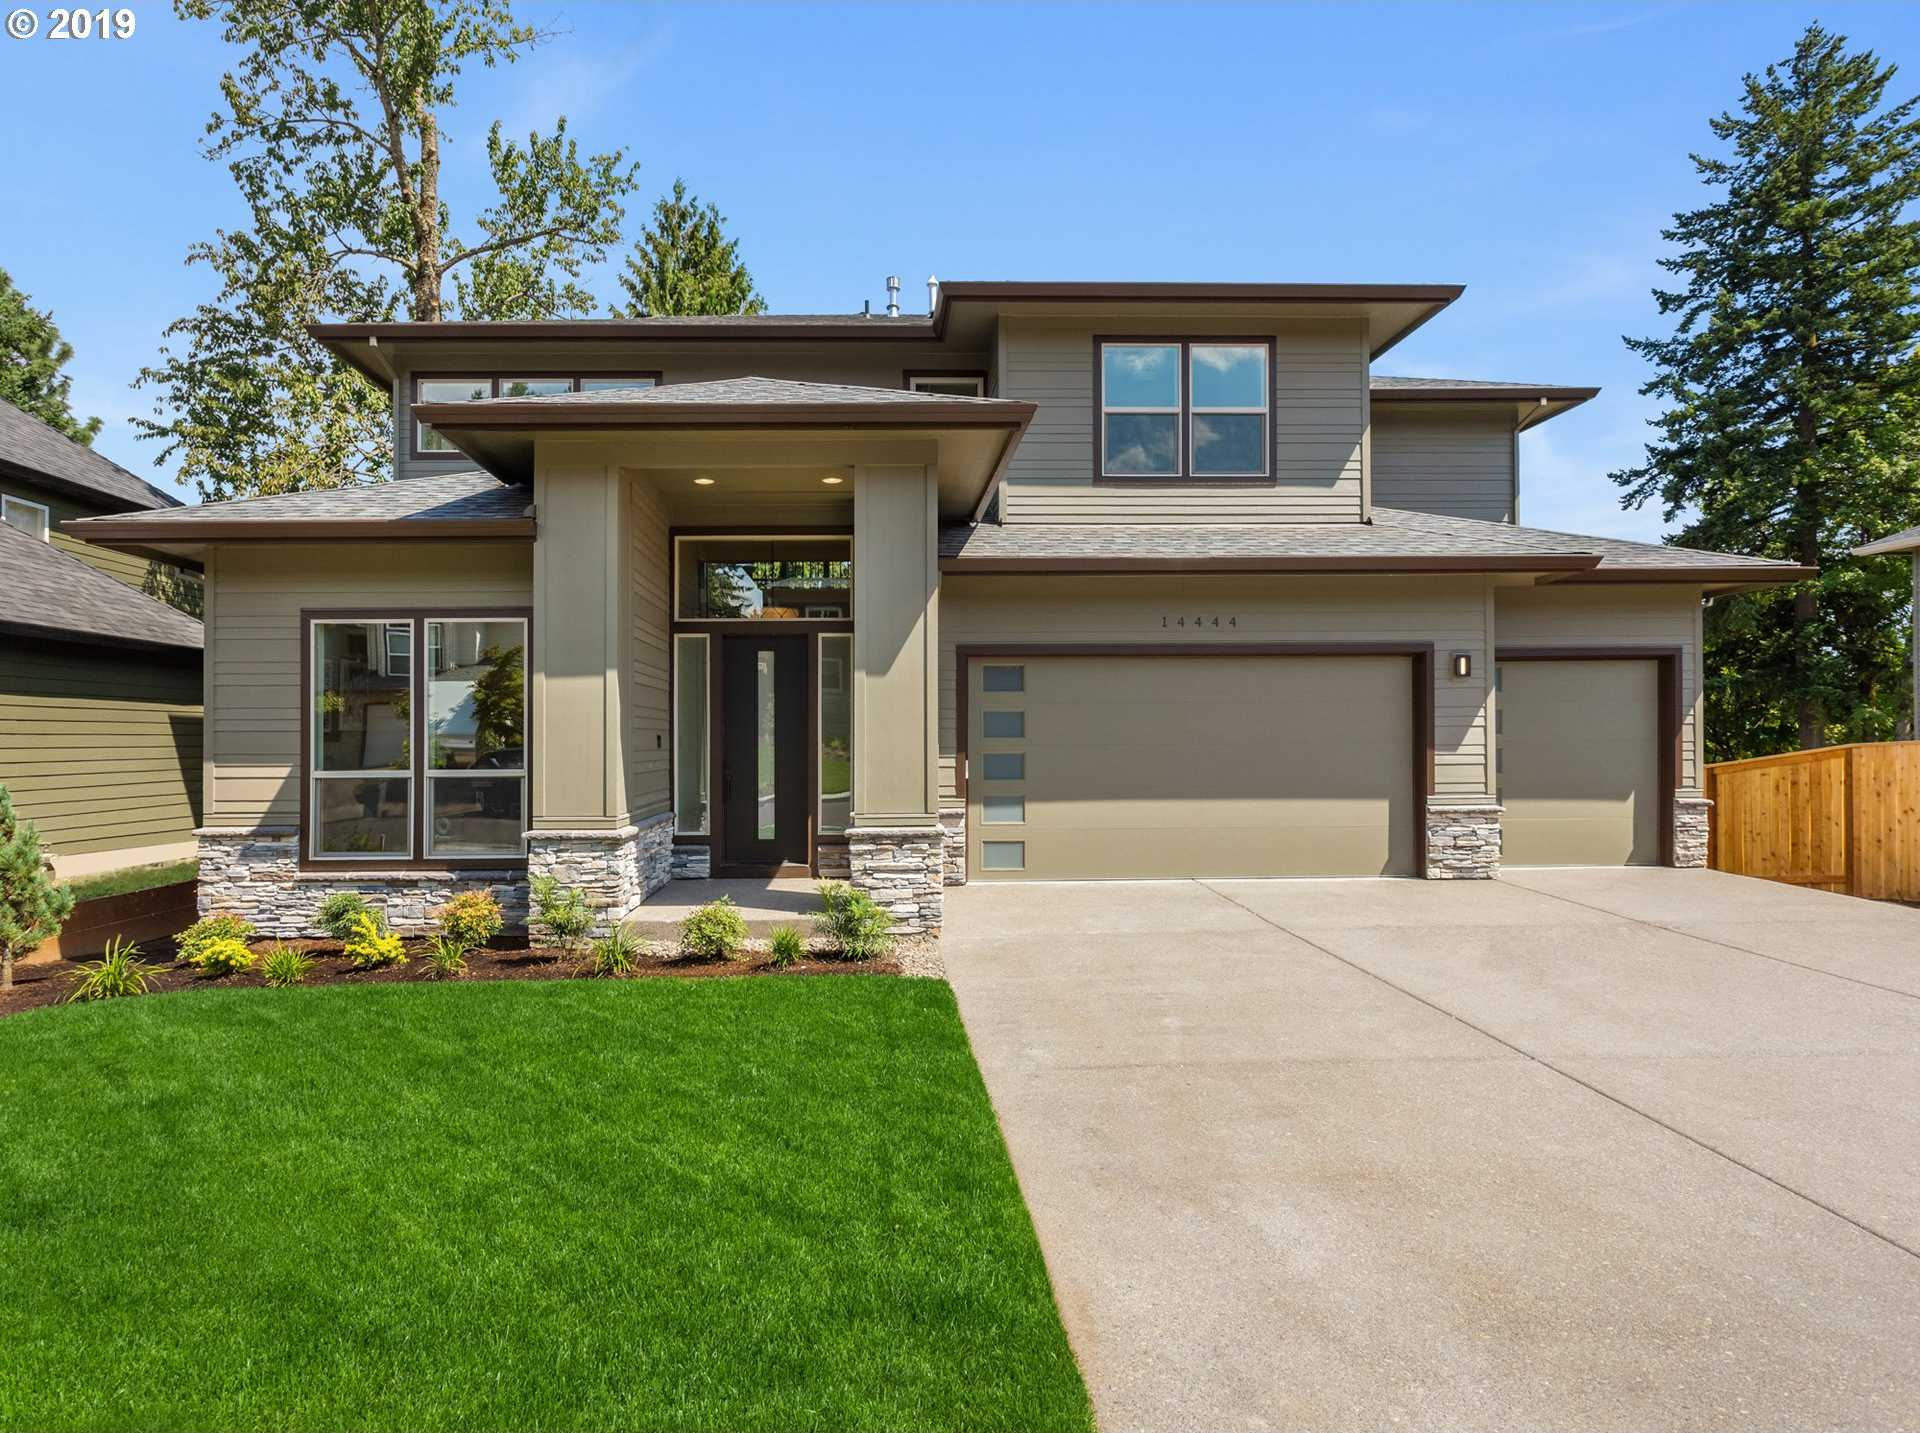 $795,000 - 3Br/3Ba -  for Sale in Tigard